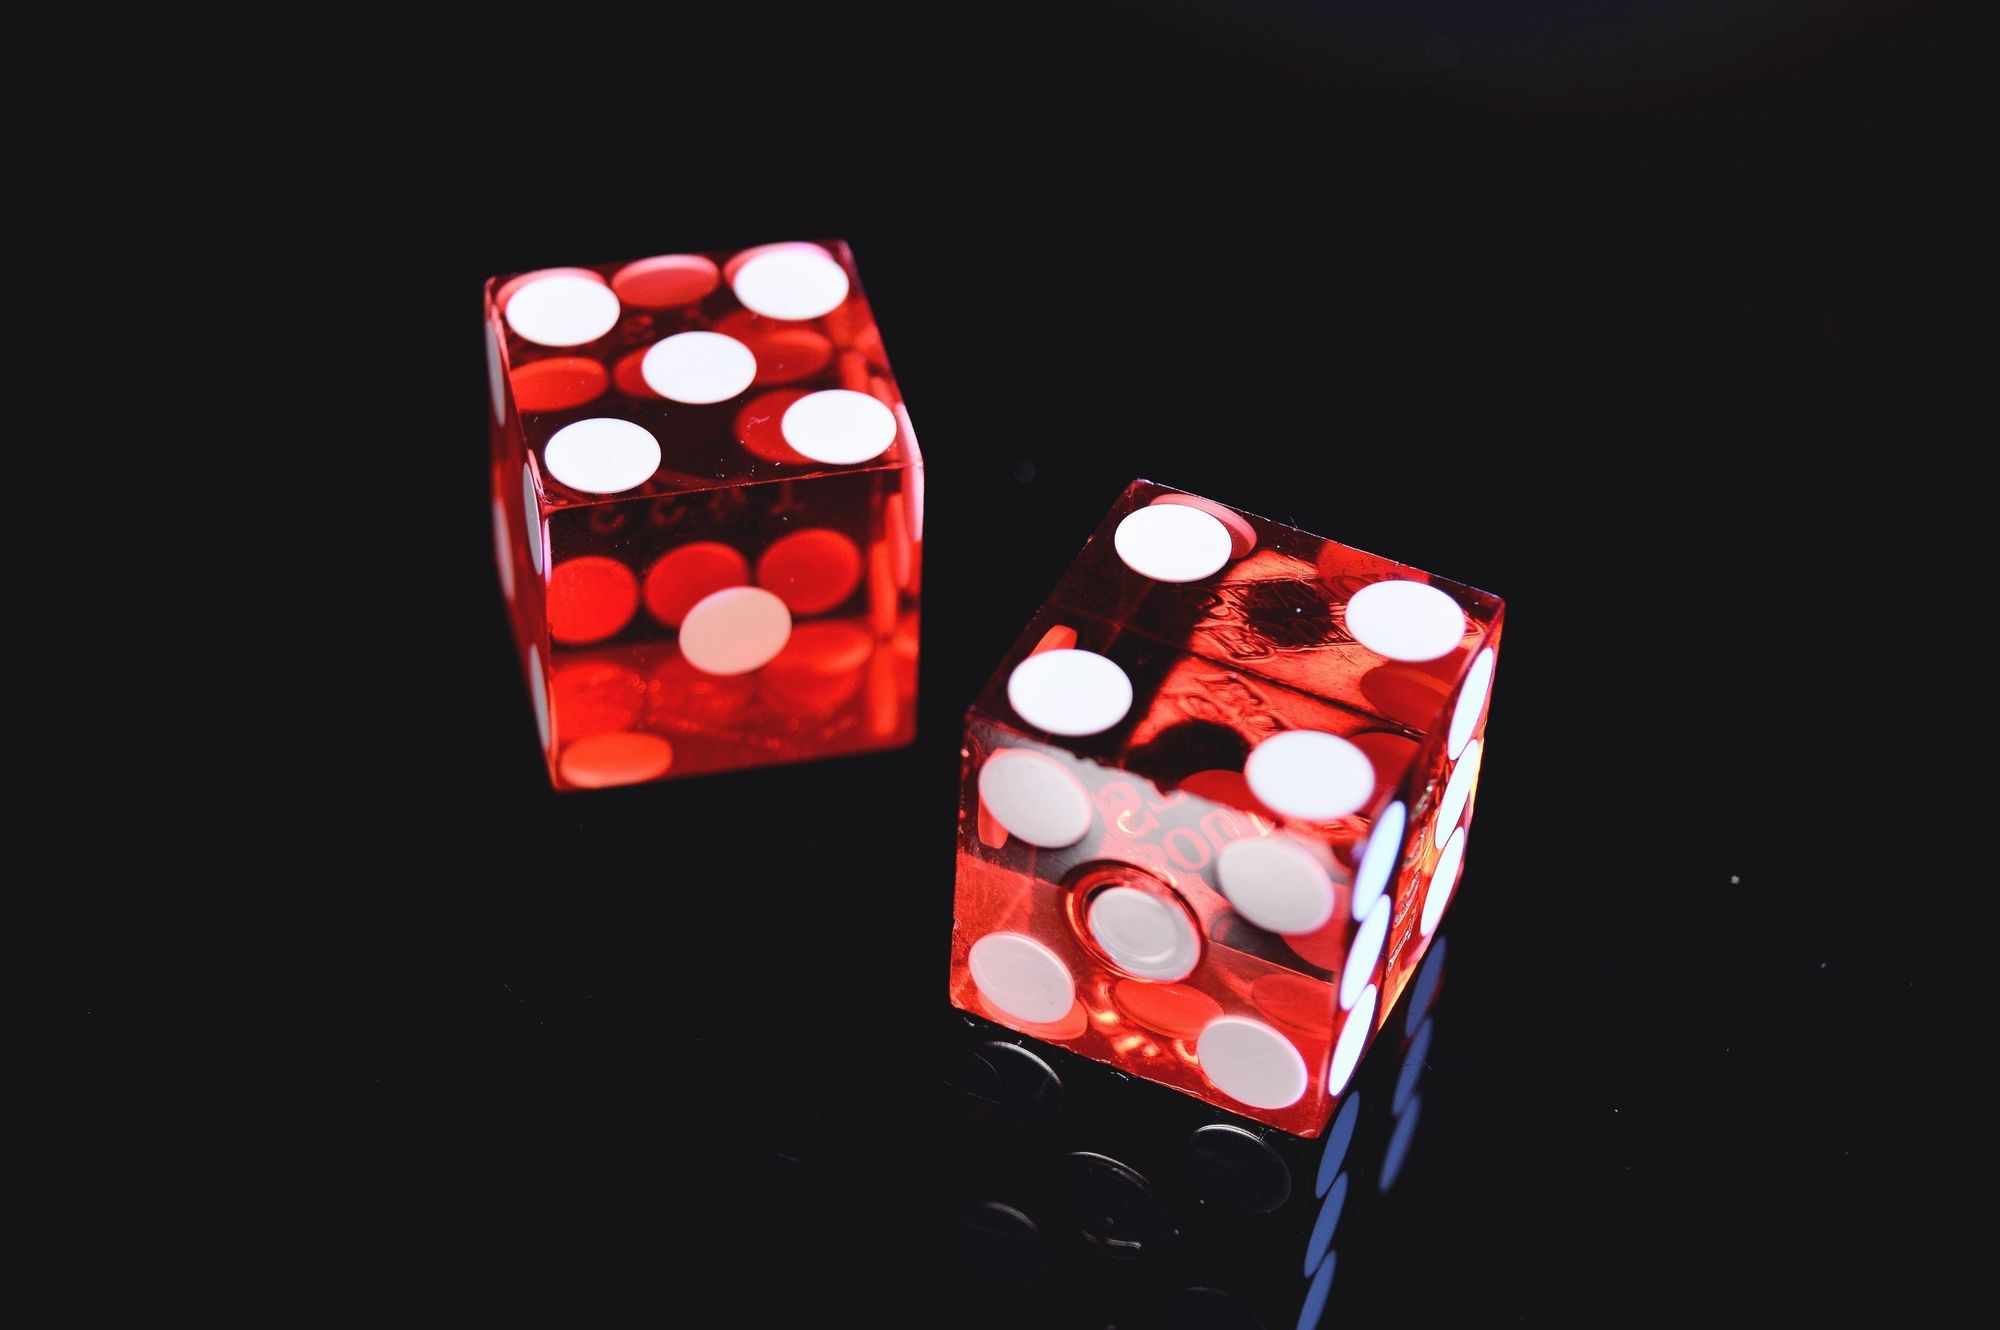 Two red dice (5 and 4)